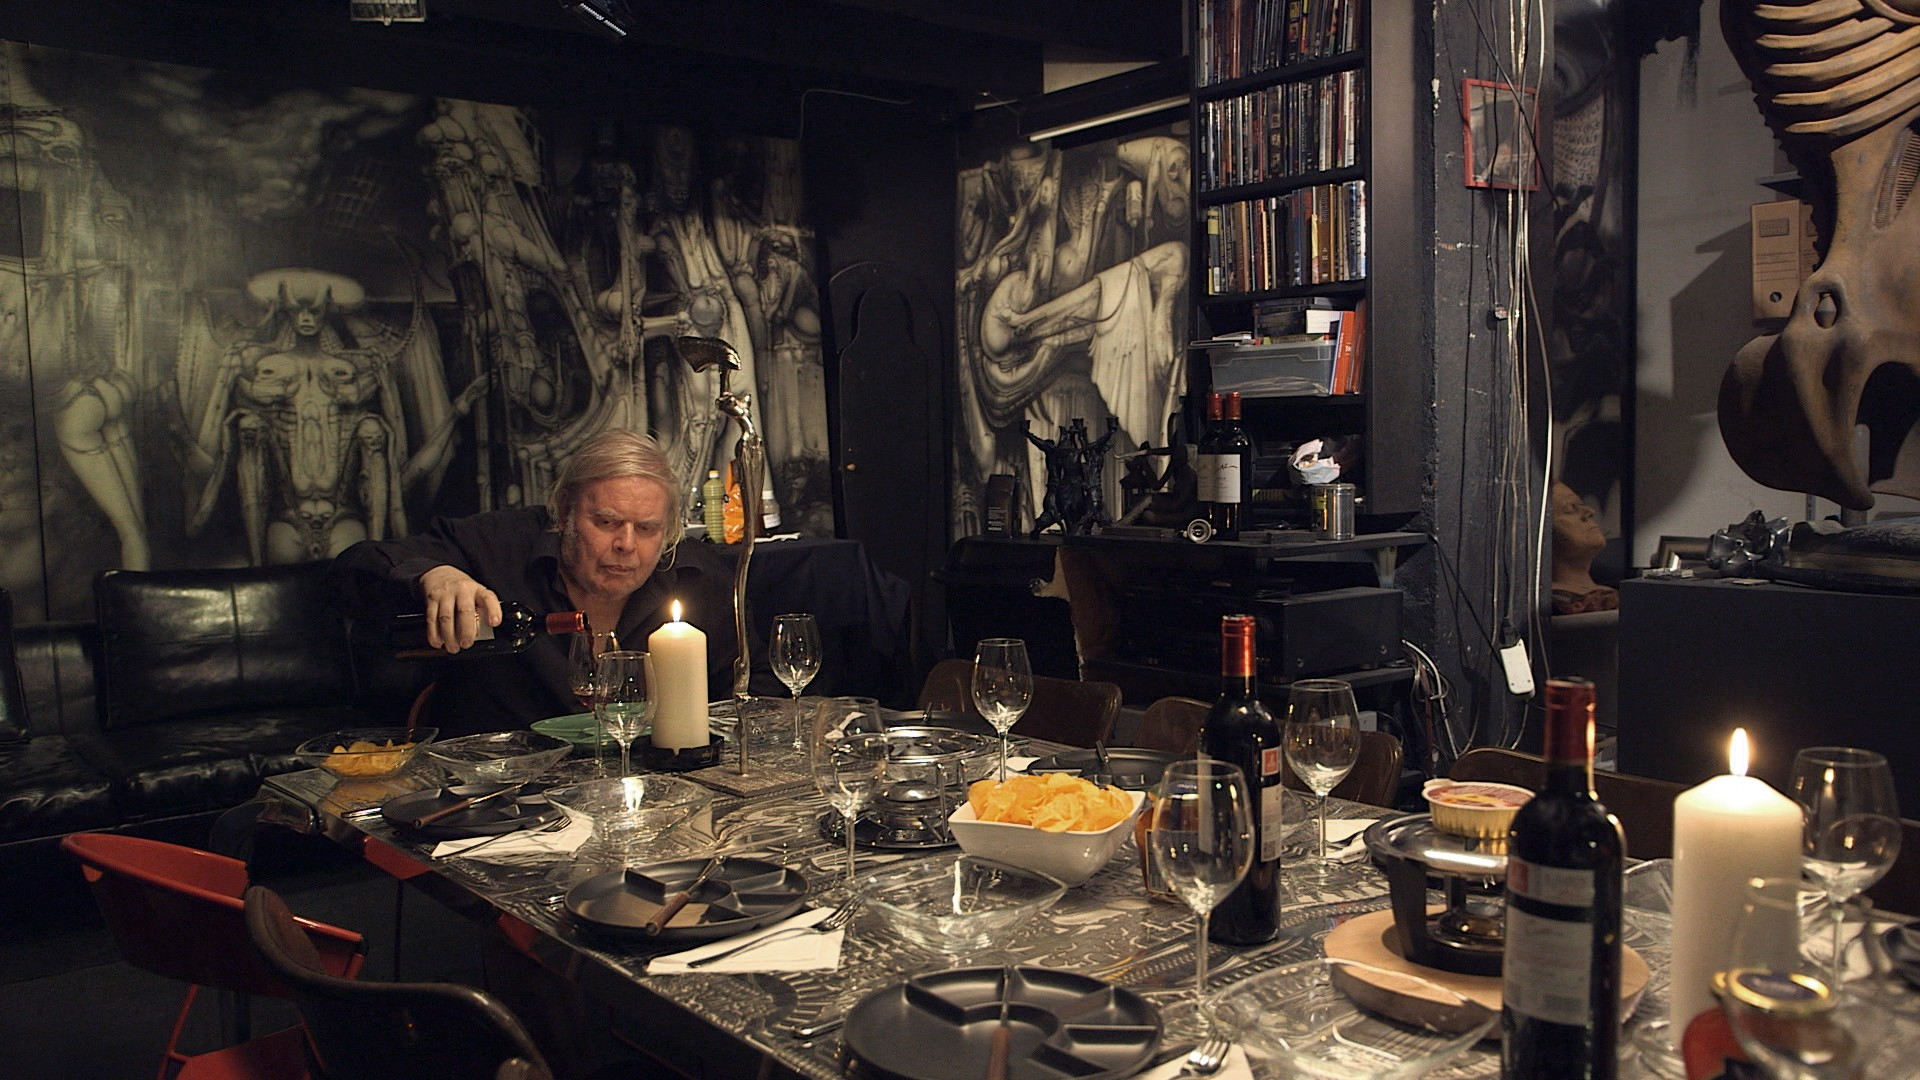 Artists Sought to Design Poster for Upcoming H R  Giger Film